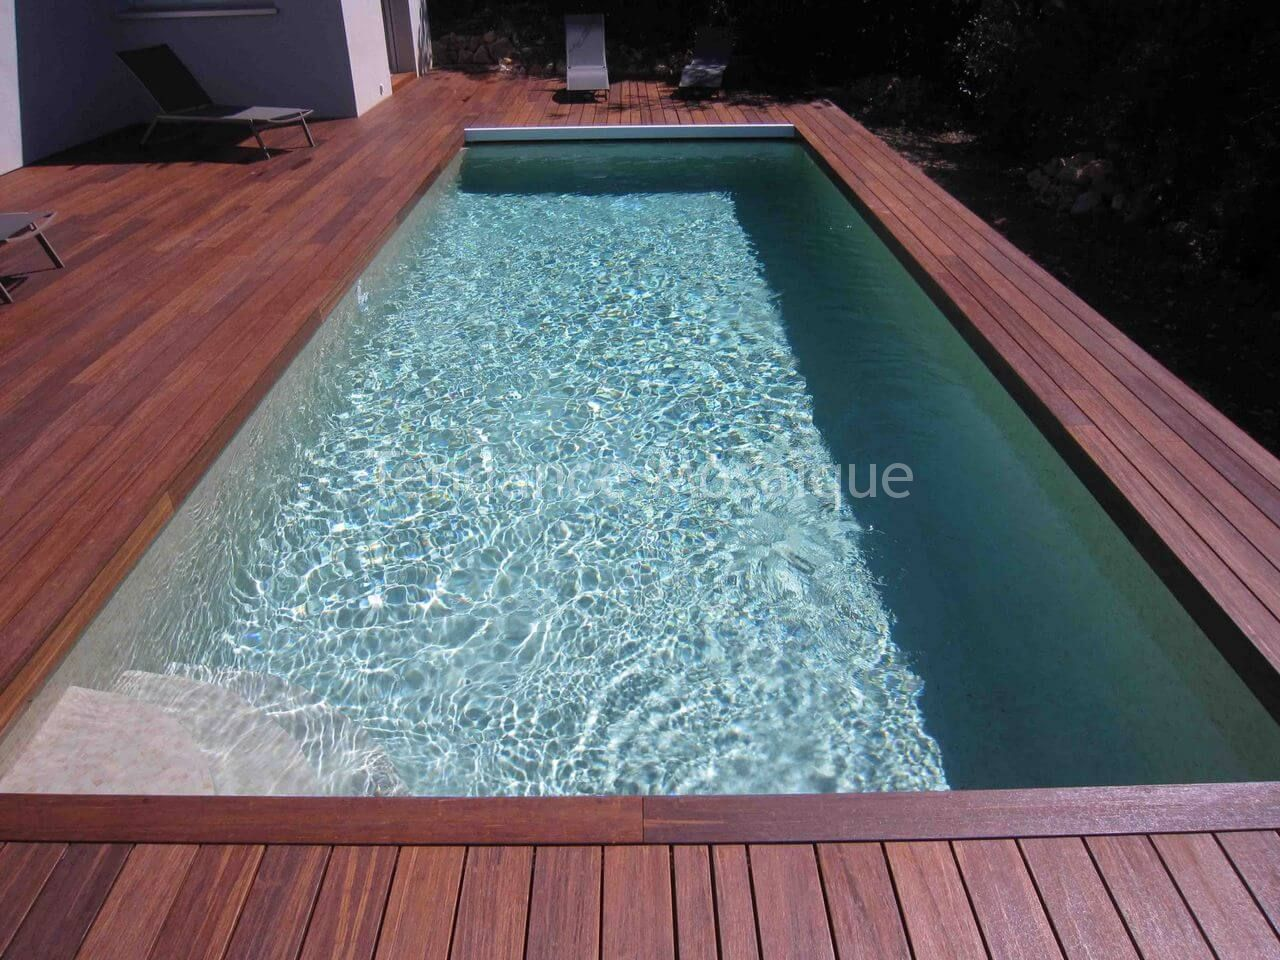 emaux de verre ezarri 2576b carrelage piscine. Black Bedroom Furniture Sets. Home Design Ideas